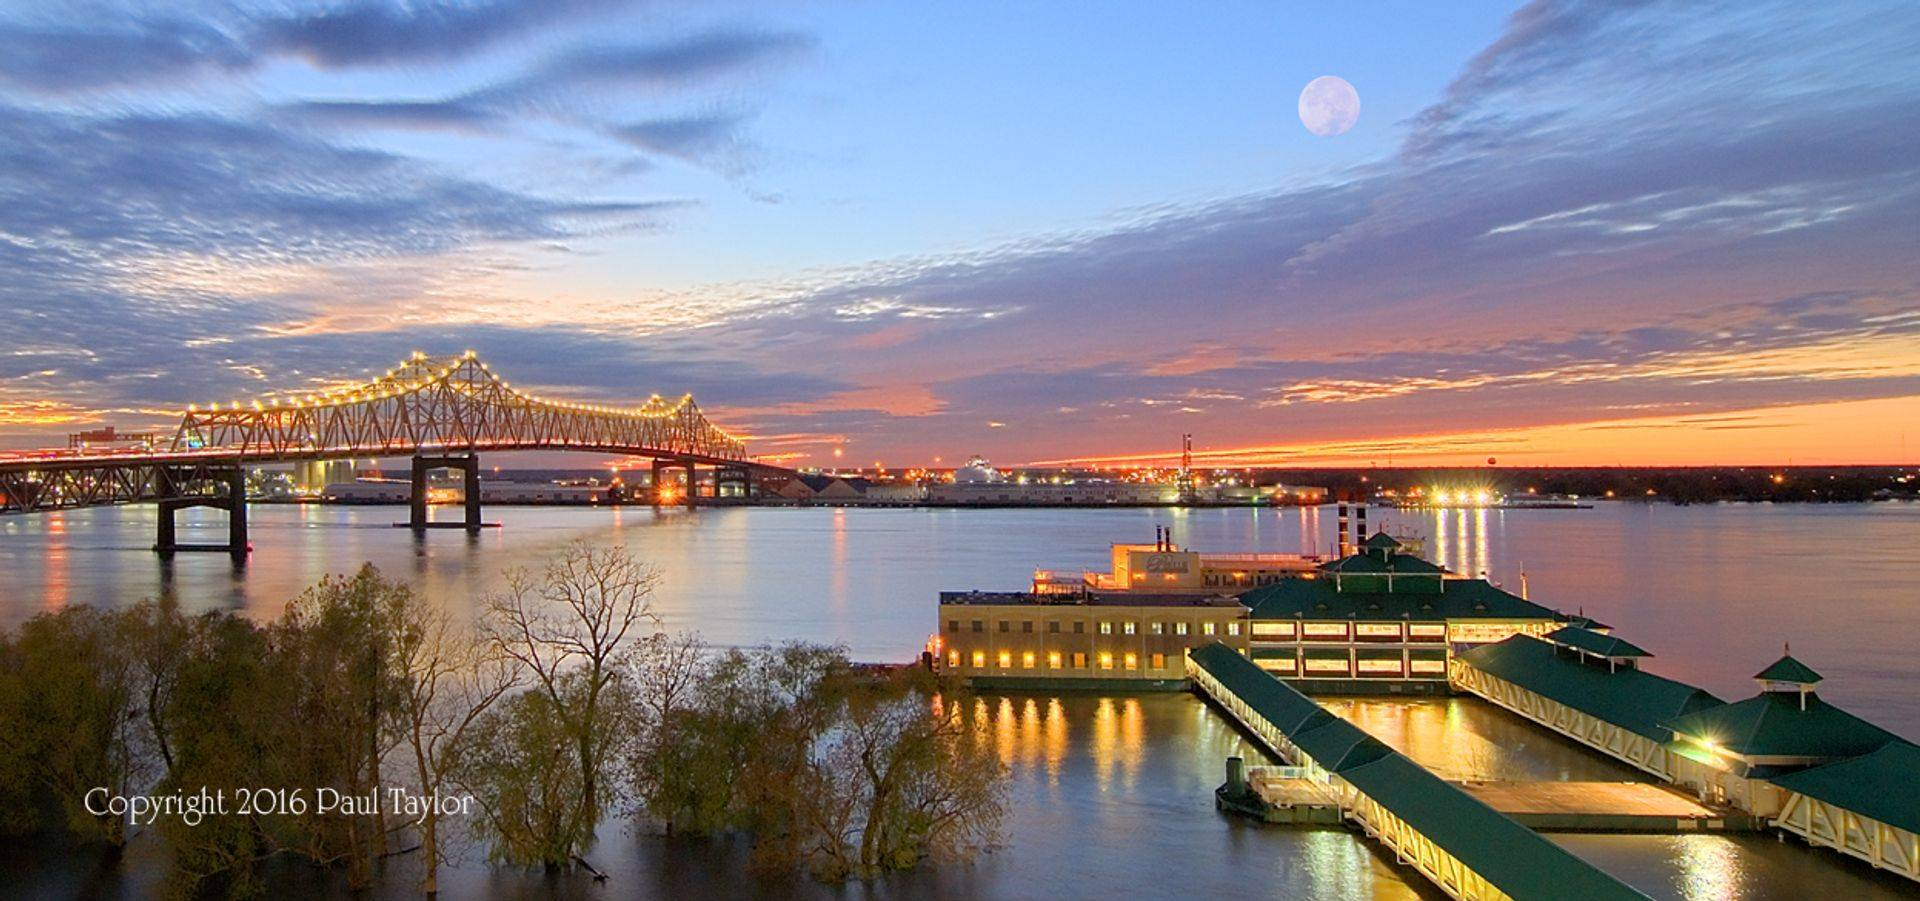 Belle of Baton Rouge Casino, Mississippi River Bridge at sunset